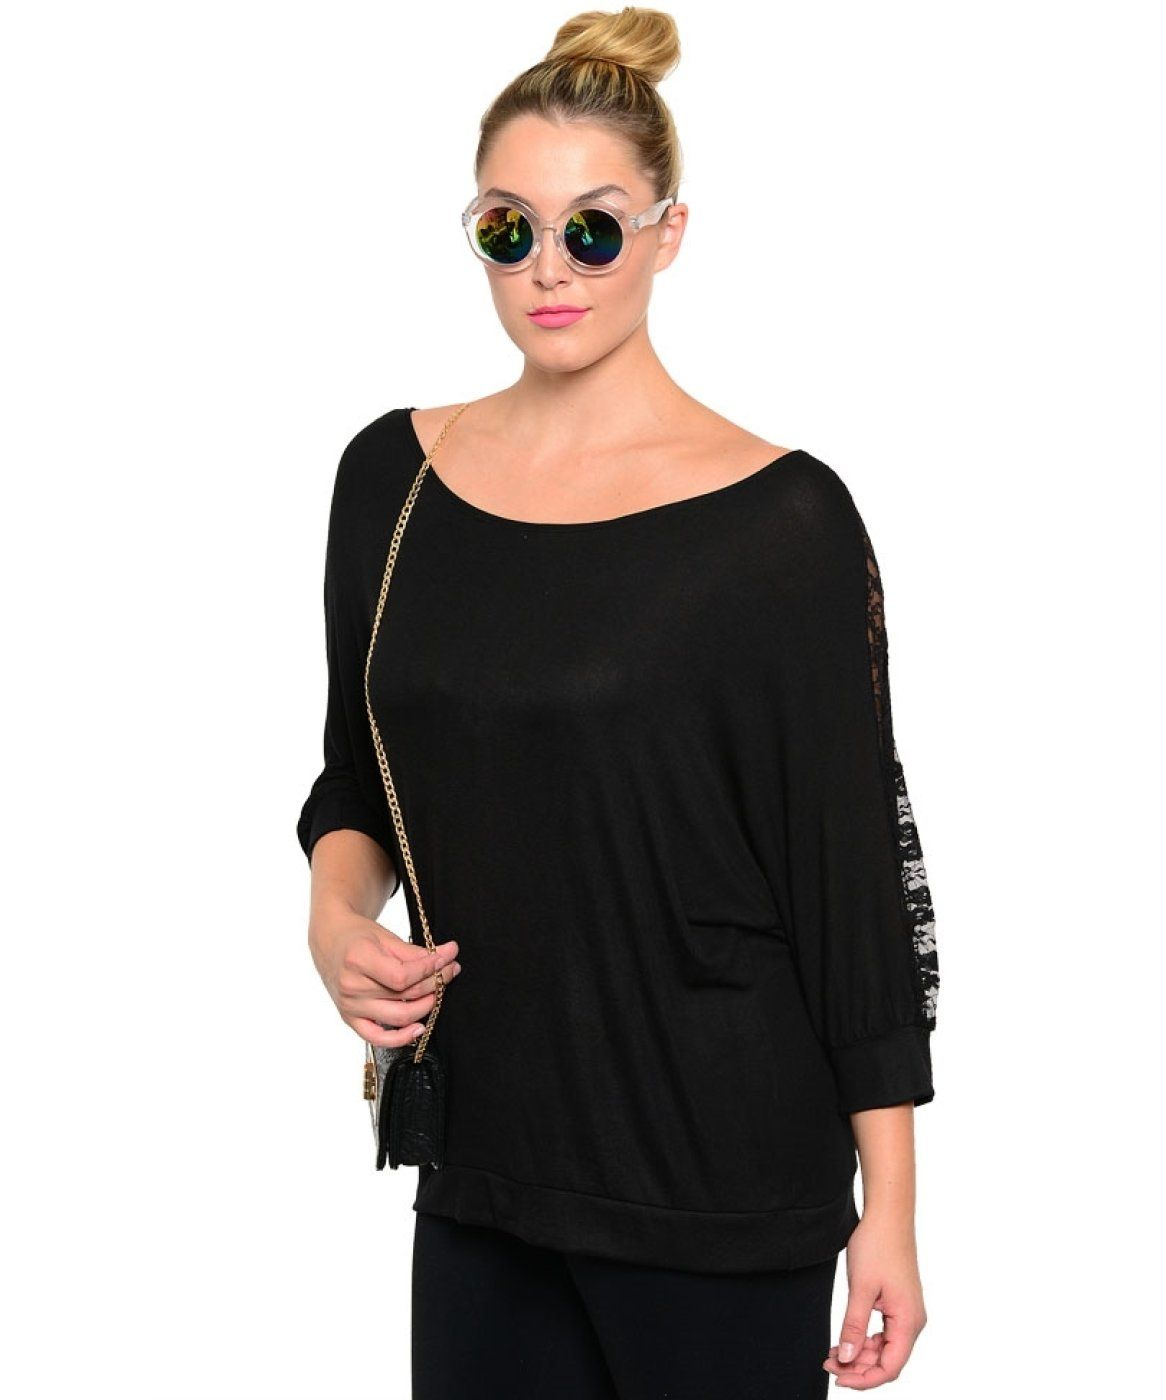 2LUV Plus Women's 3/4 Floral Lace Sleeve Boat Neck Top Black 1XL (1754X)